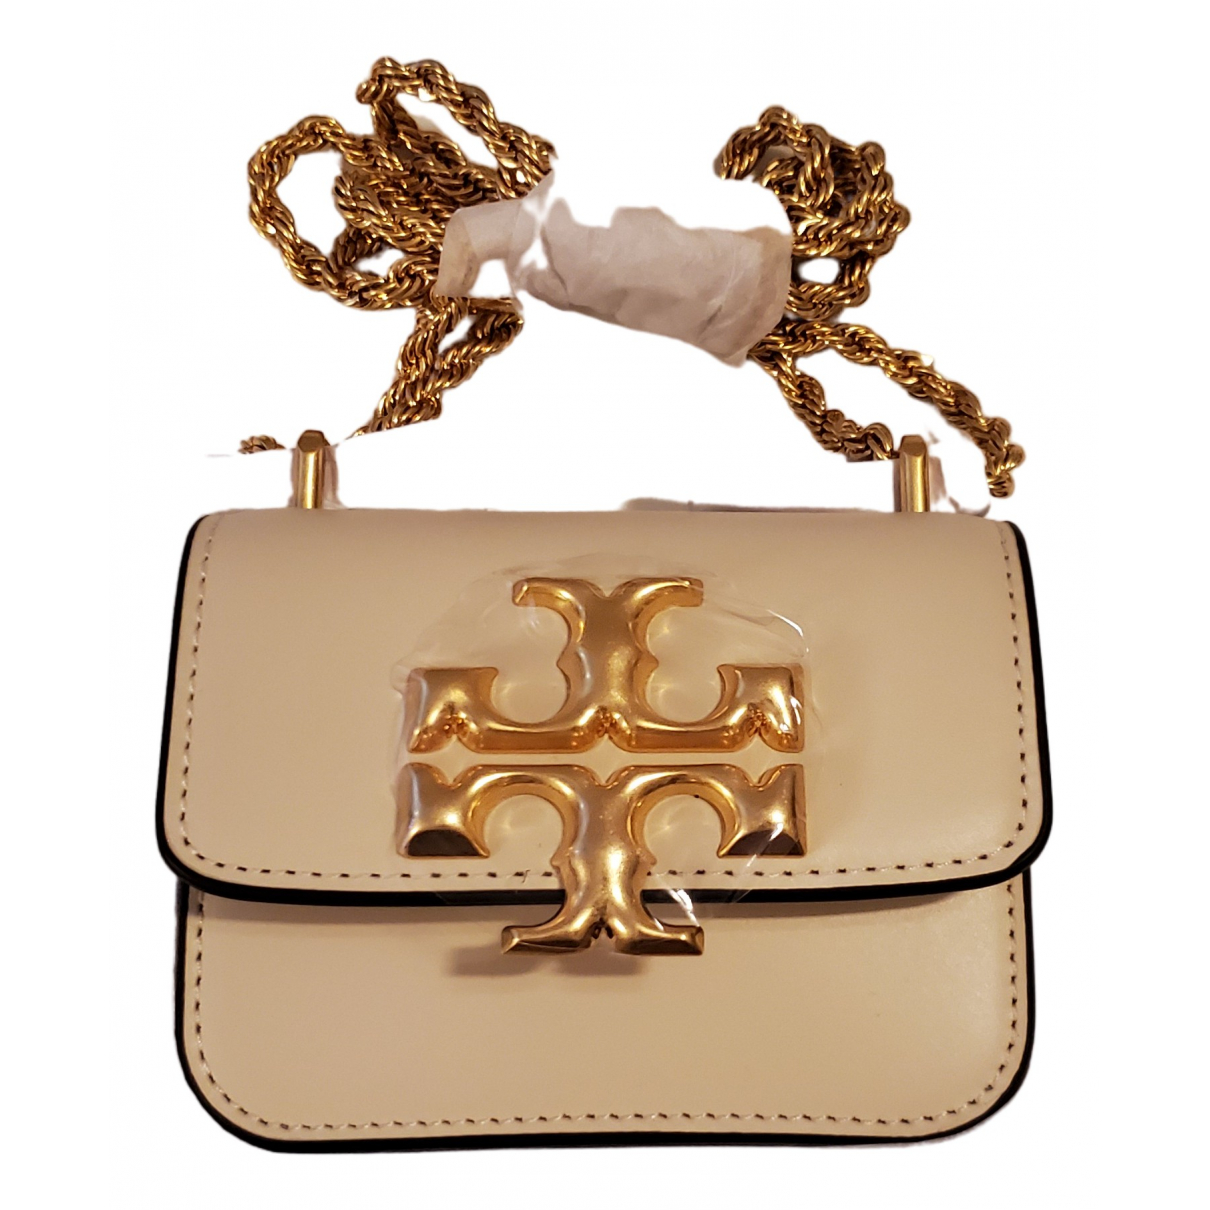 Tory Burch \N White Leather handbag for Women \N